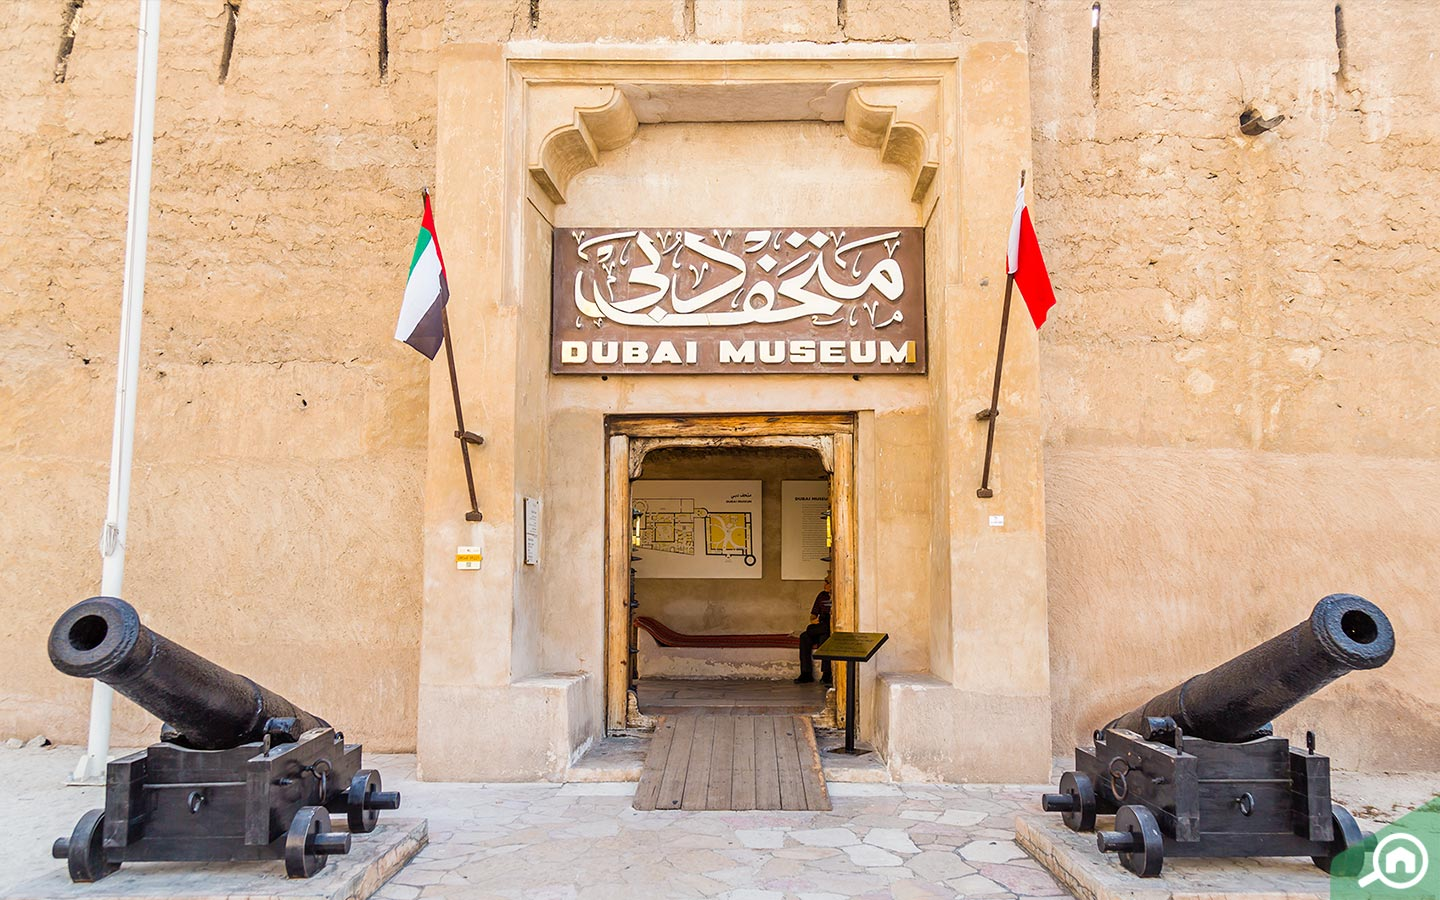 The entrance of the Dubai Museum